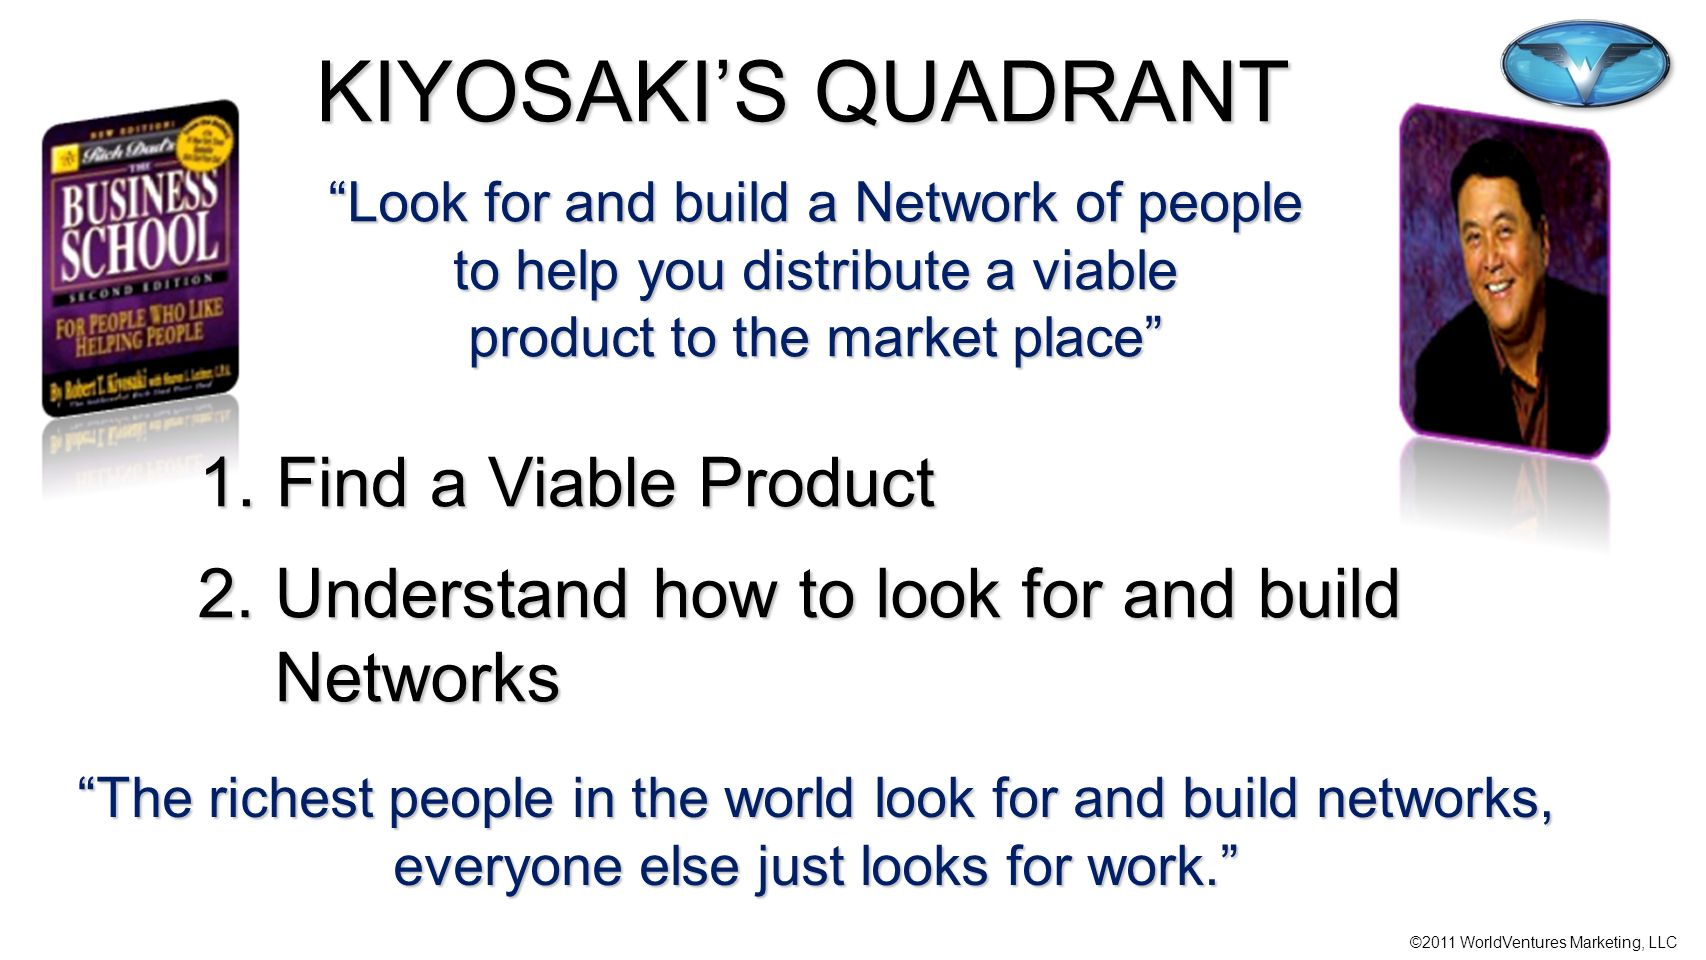 KIYOSAKI'S QUADRANT 1. Find a Viable Product